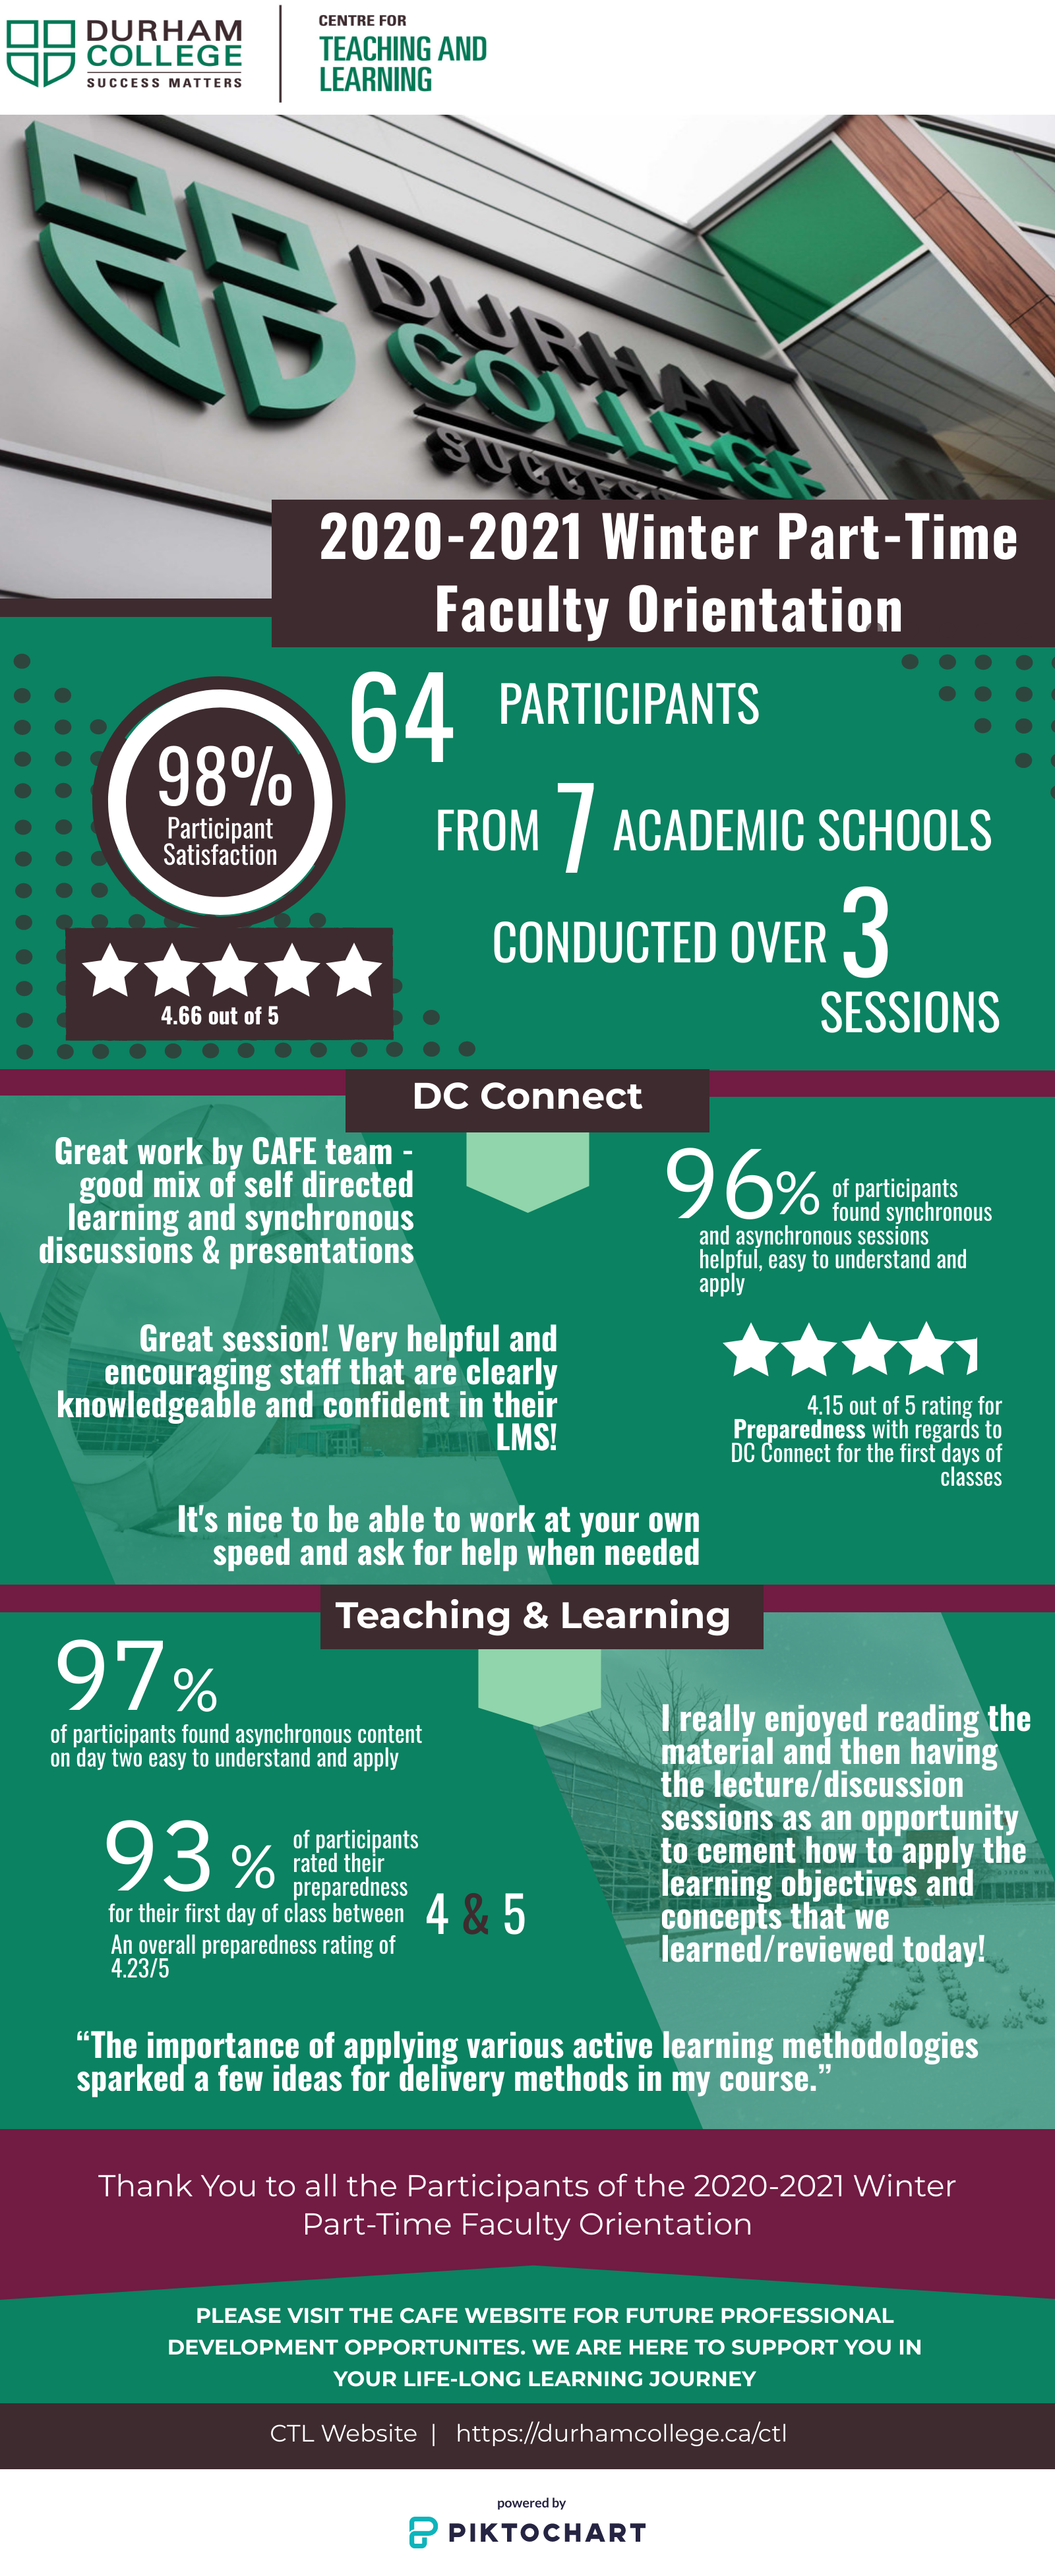 2020-2021 Winter Part-Time Faculty Orientation Infographic